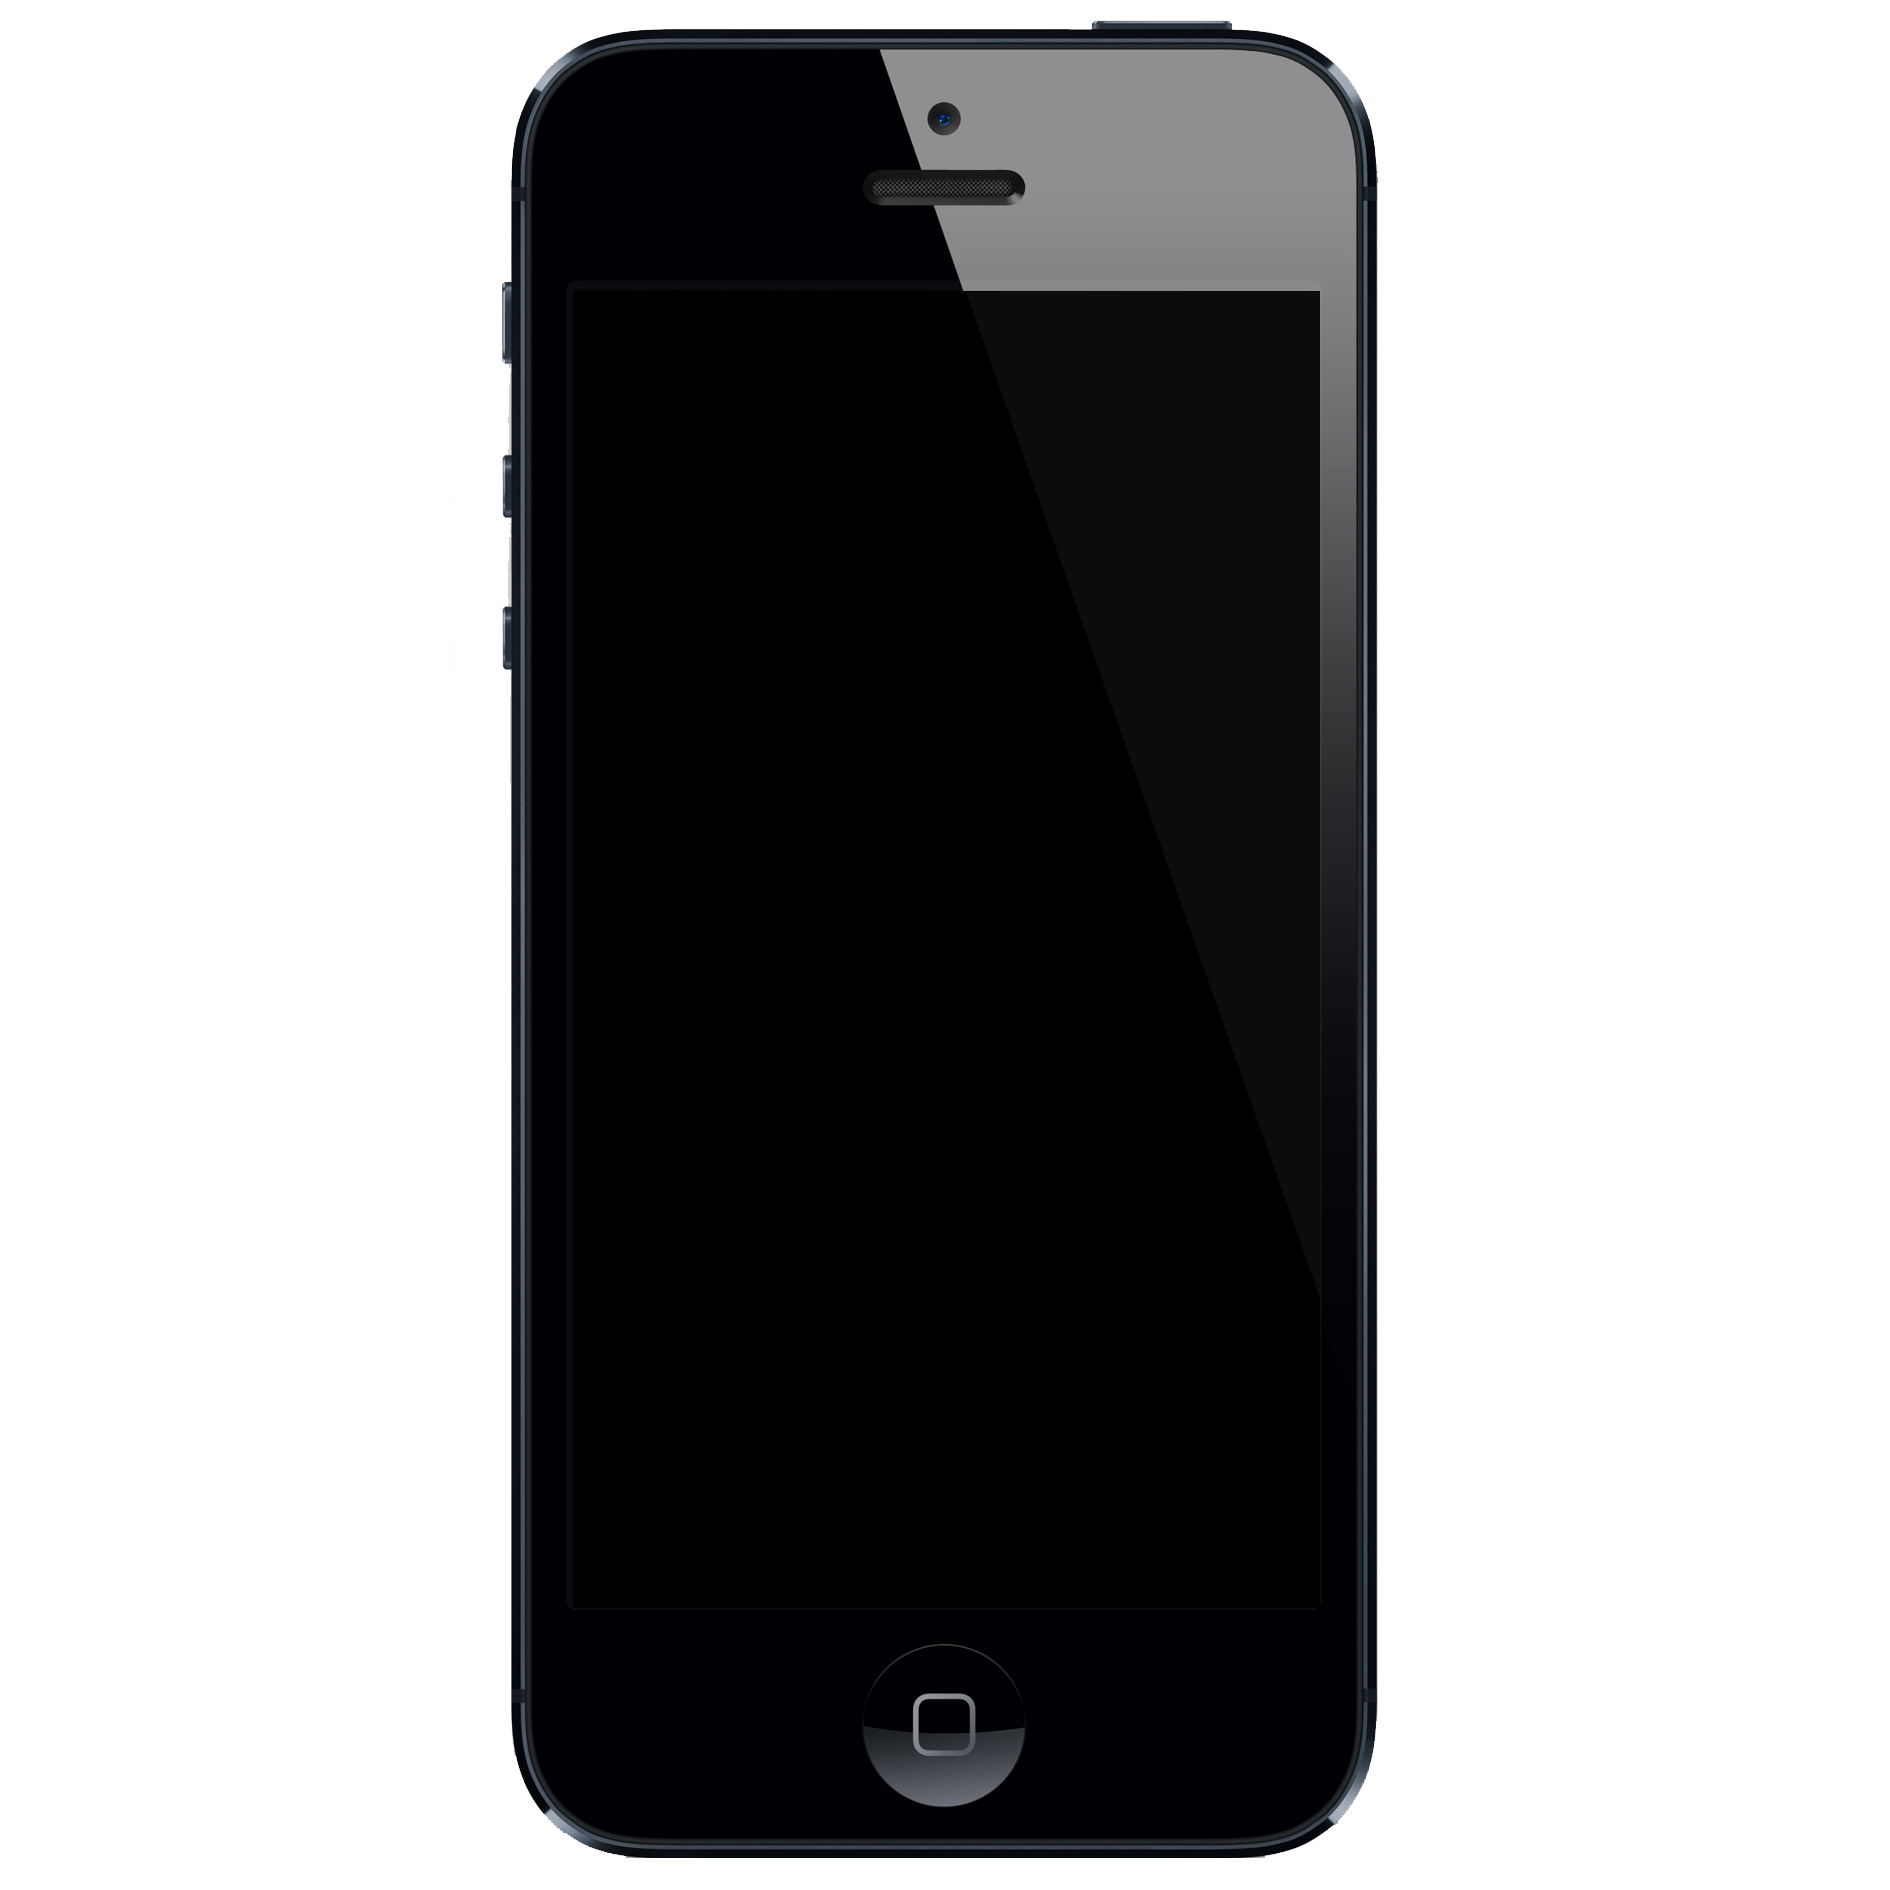 Blank iphone screen png. Image